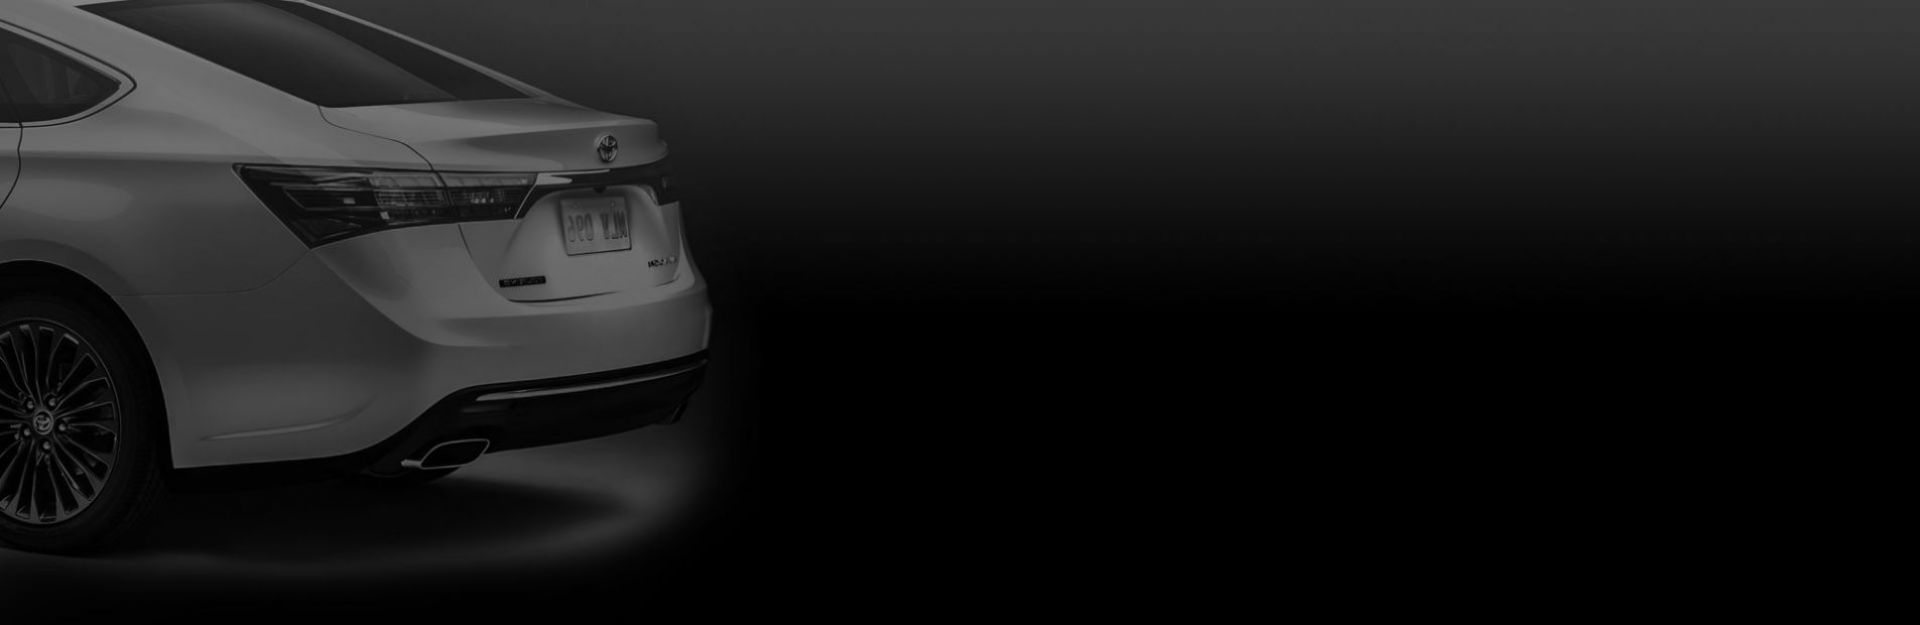 Automotive lighting products from I I Stanley